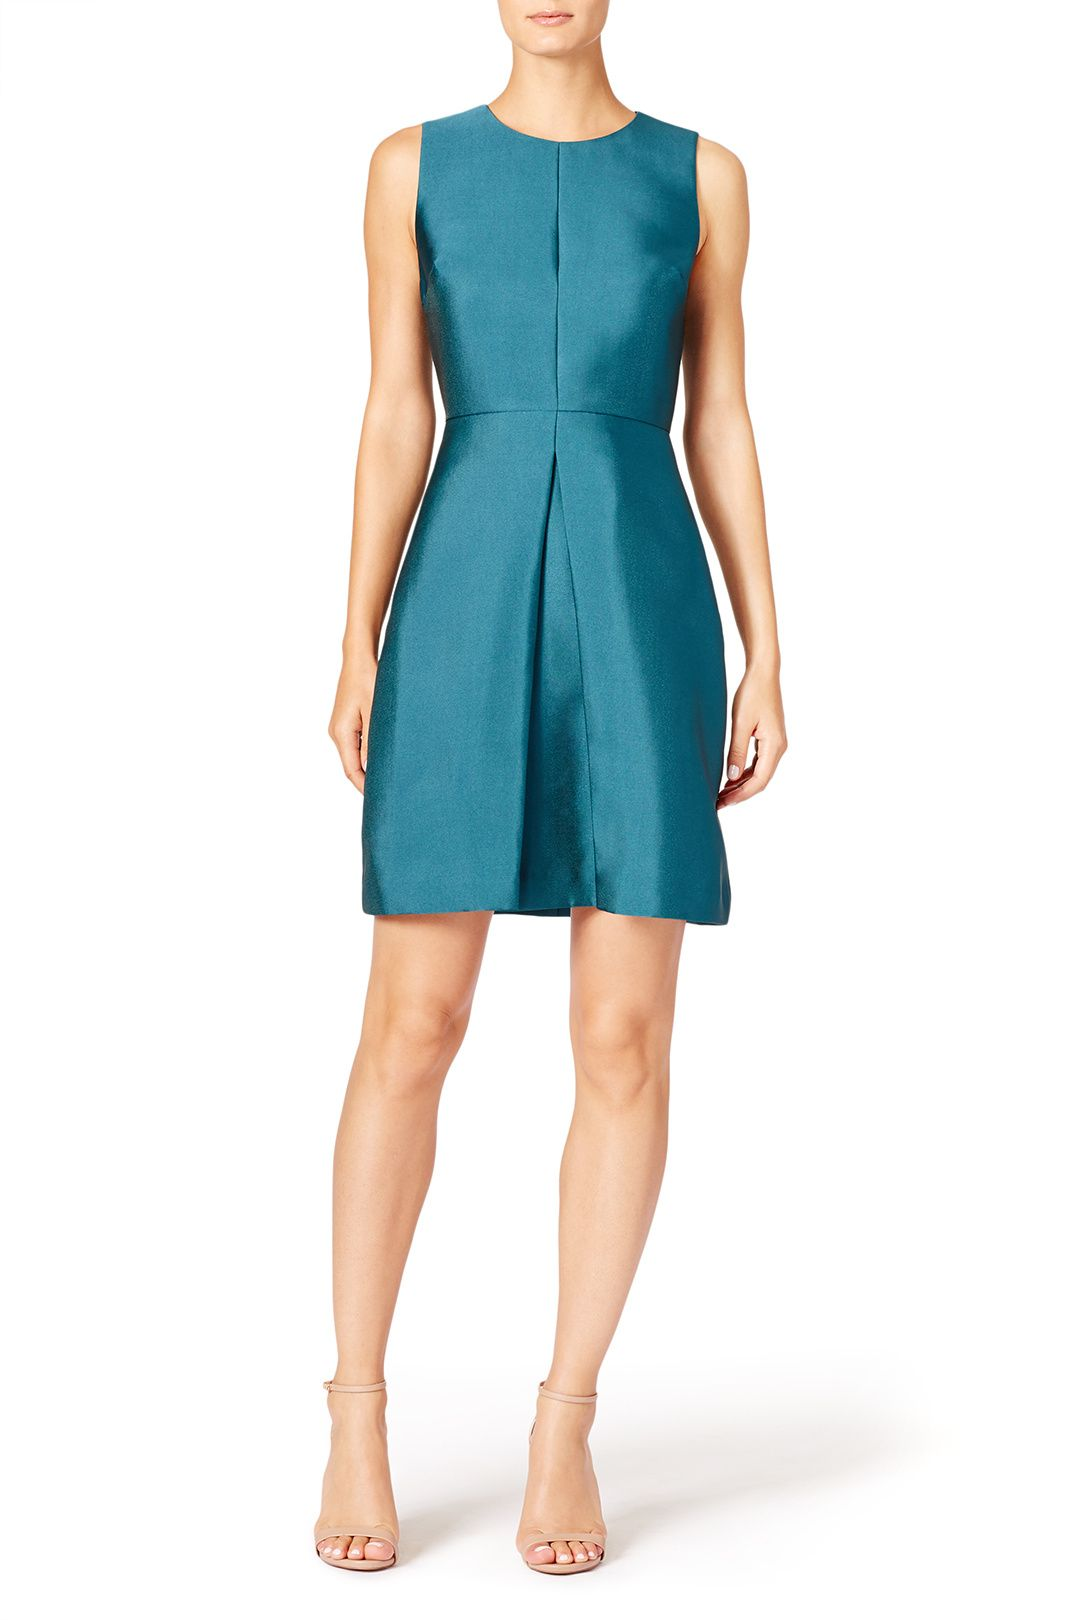 Green Sophie Dress | Designers and Shopping